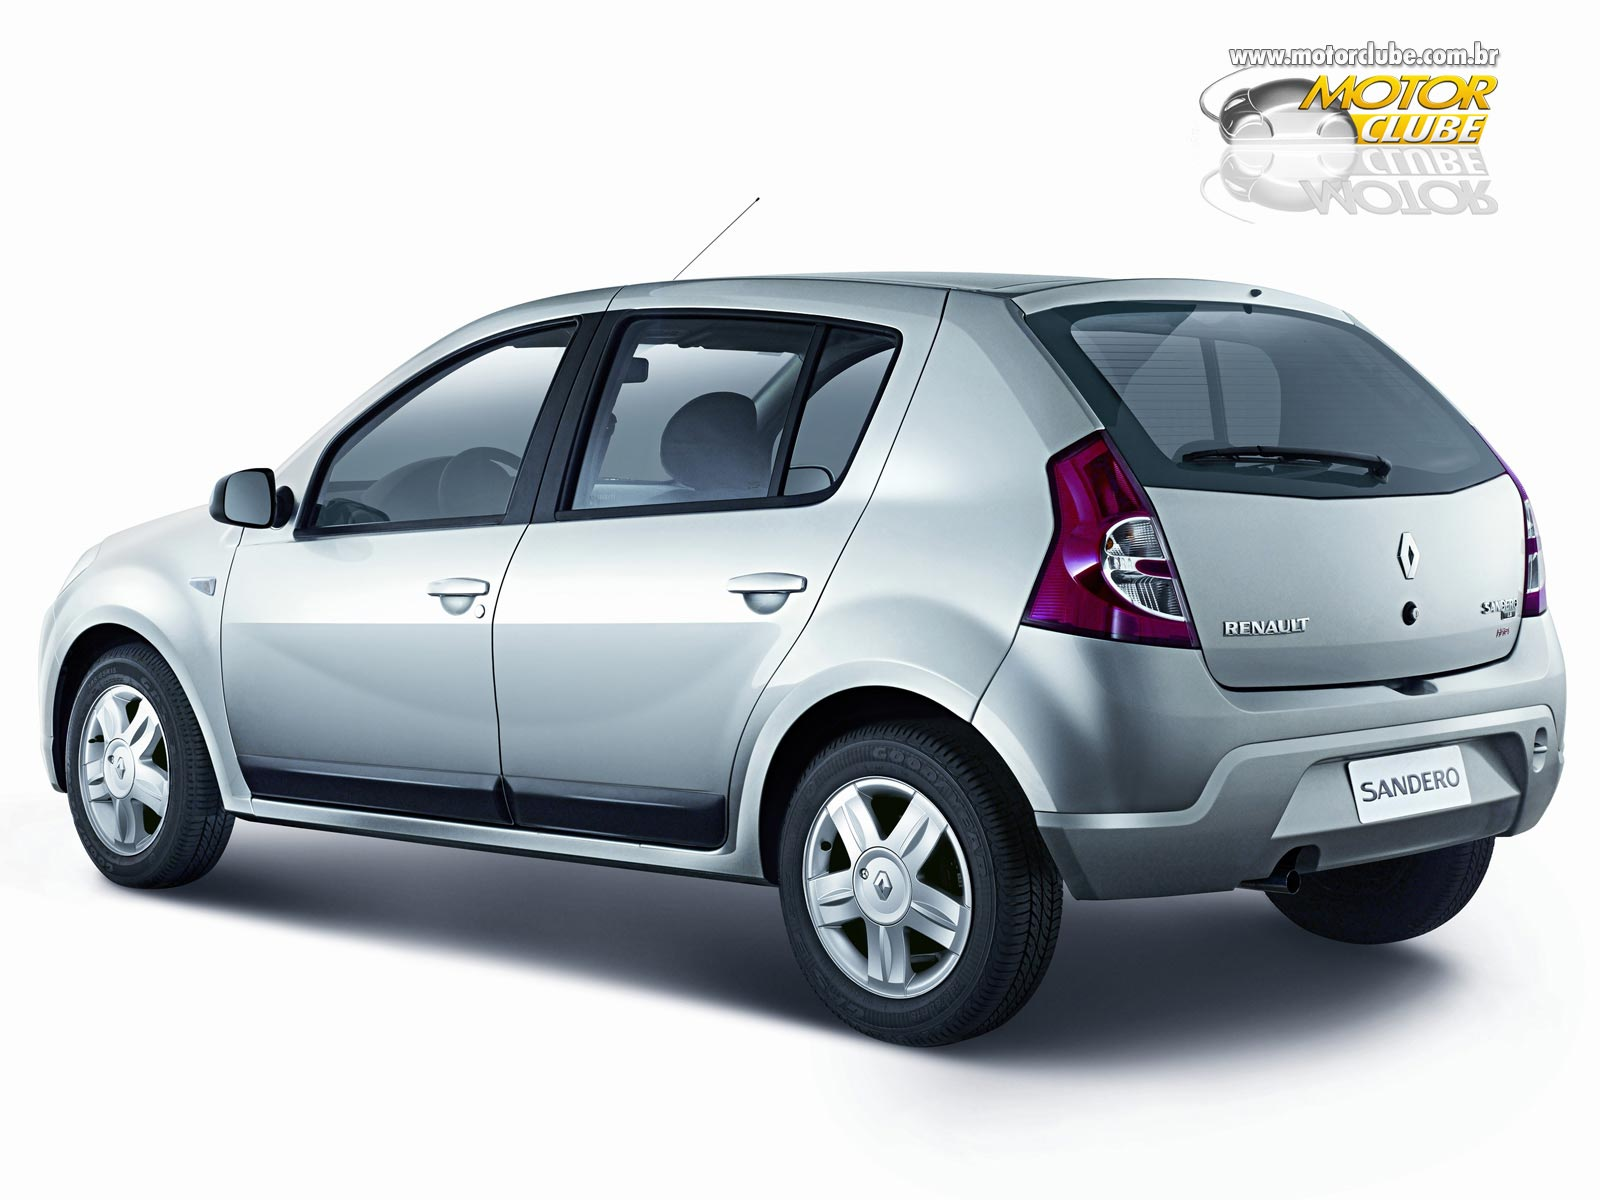 2010 renault sandero pictures information and specs auto. Black Bedroom Furniture Sets. Home Design Ideas